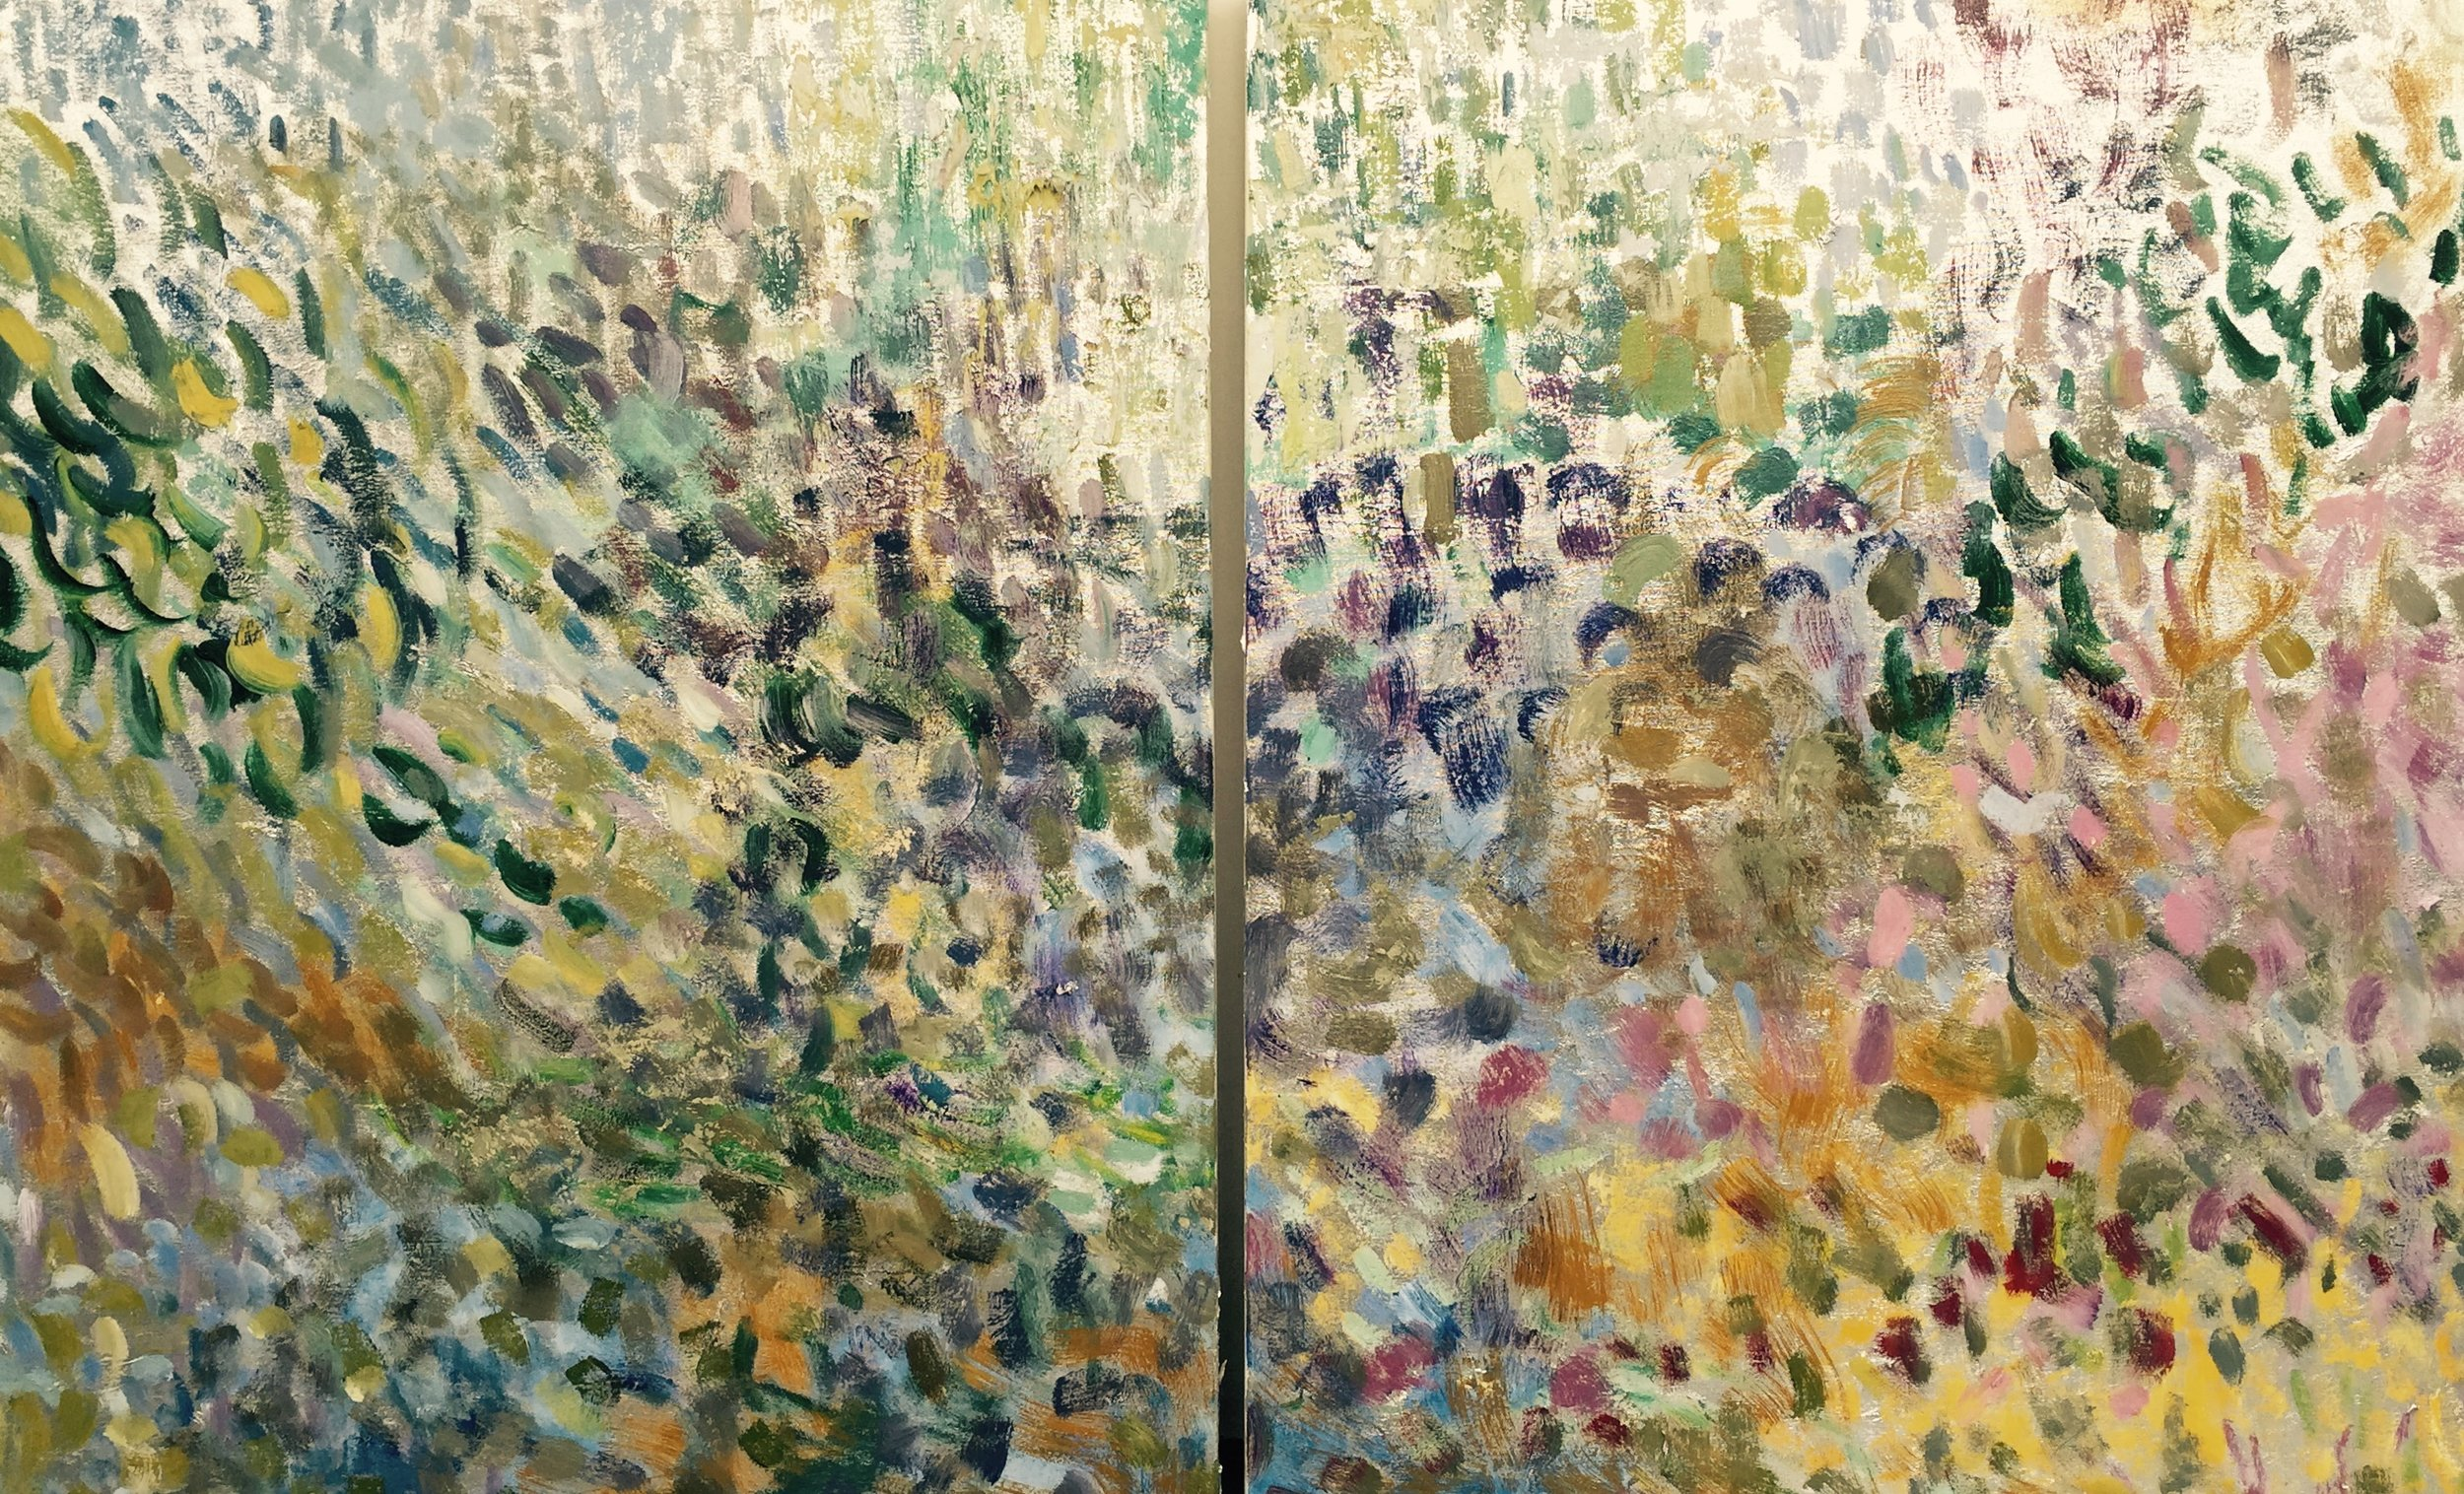 Letting Go*#30 x 48 in. total, diptych